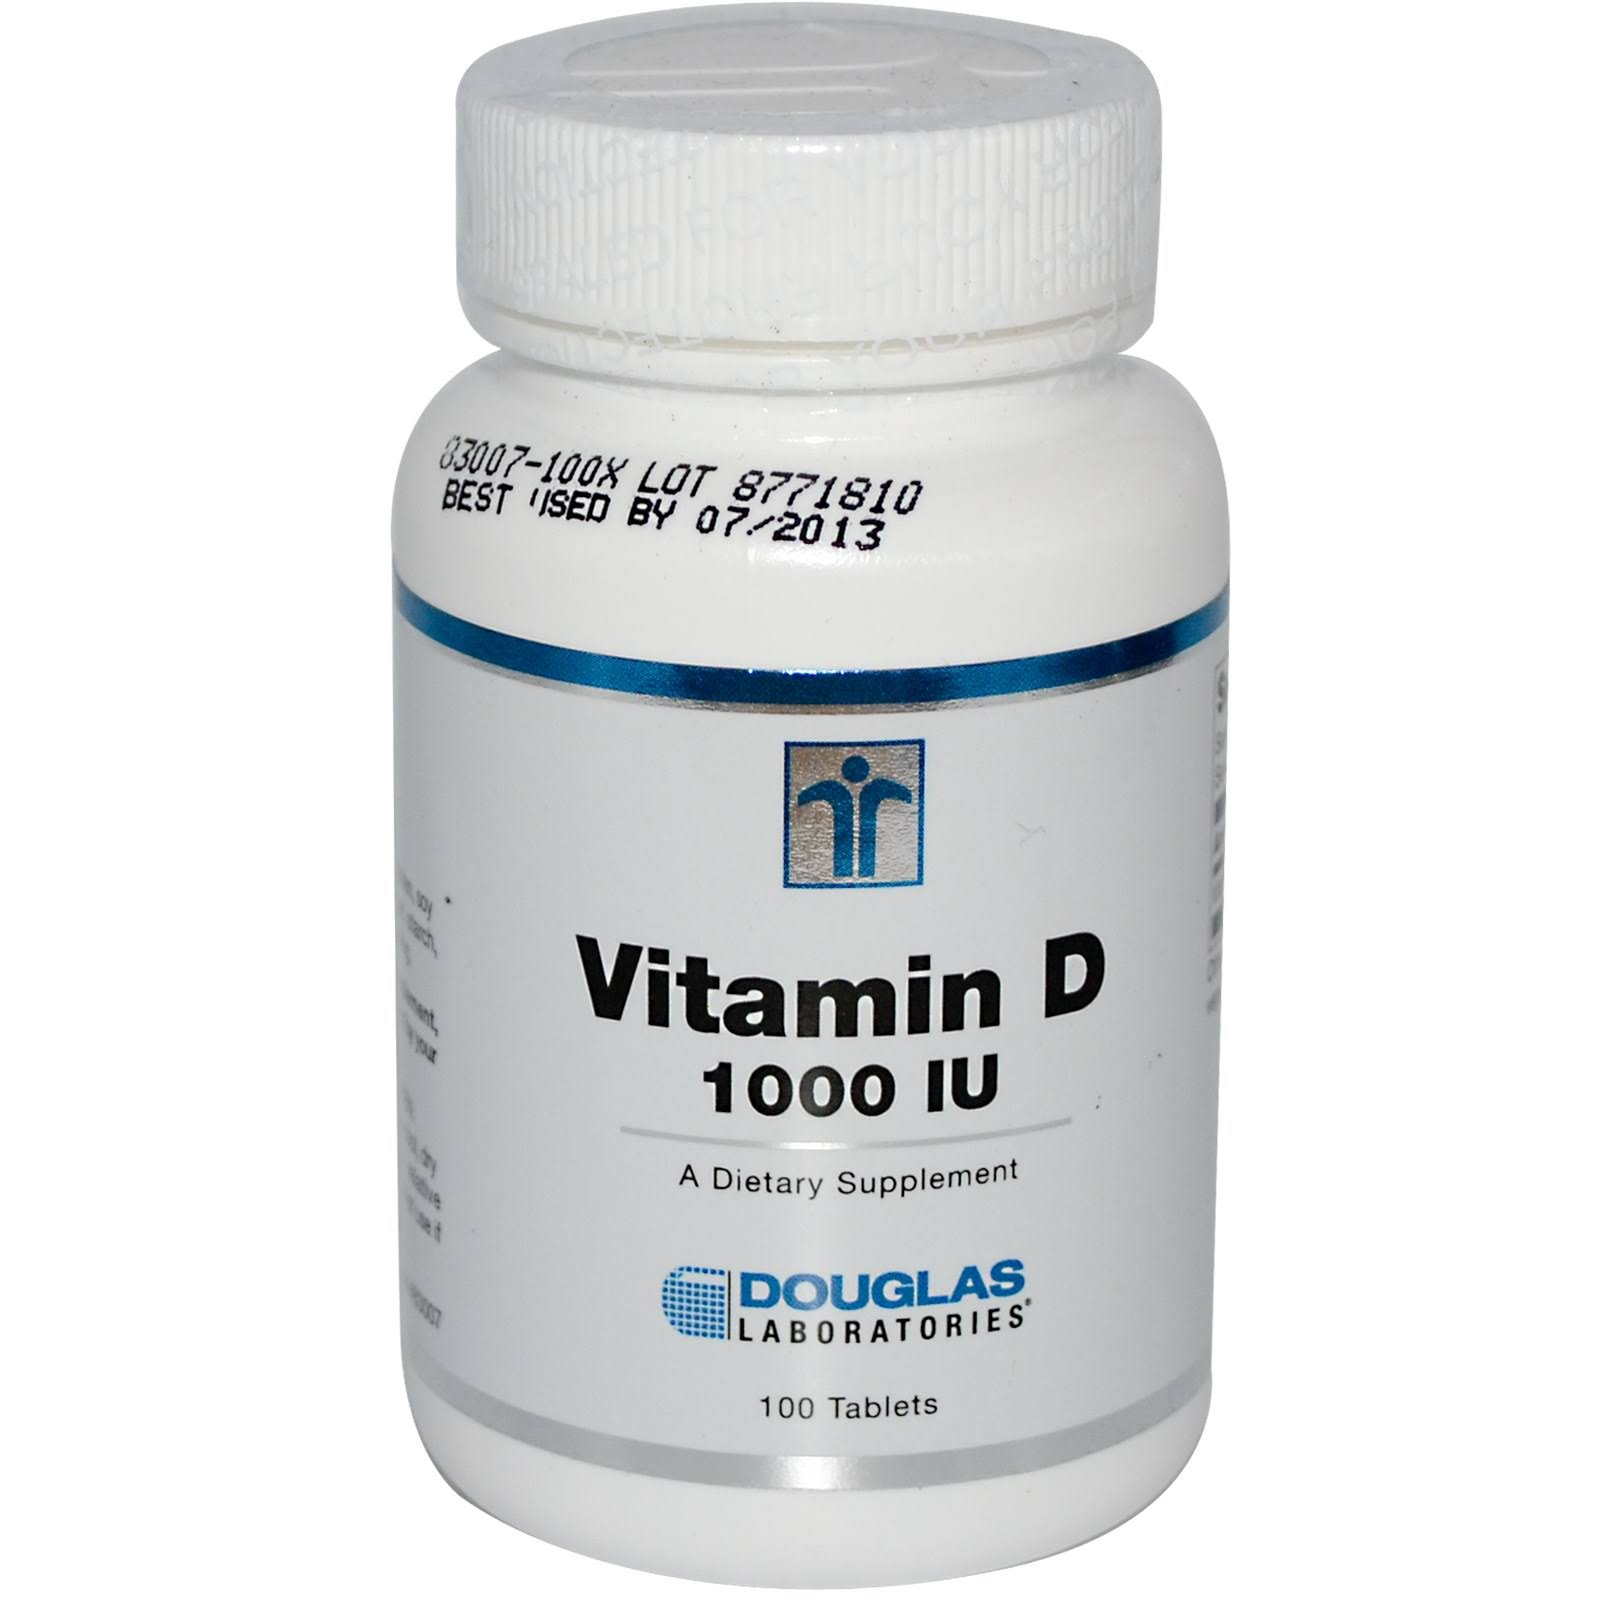 Douglas Laboratories Vitamin D 1000 IU Dietary Supplement - 100 Tablet